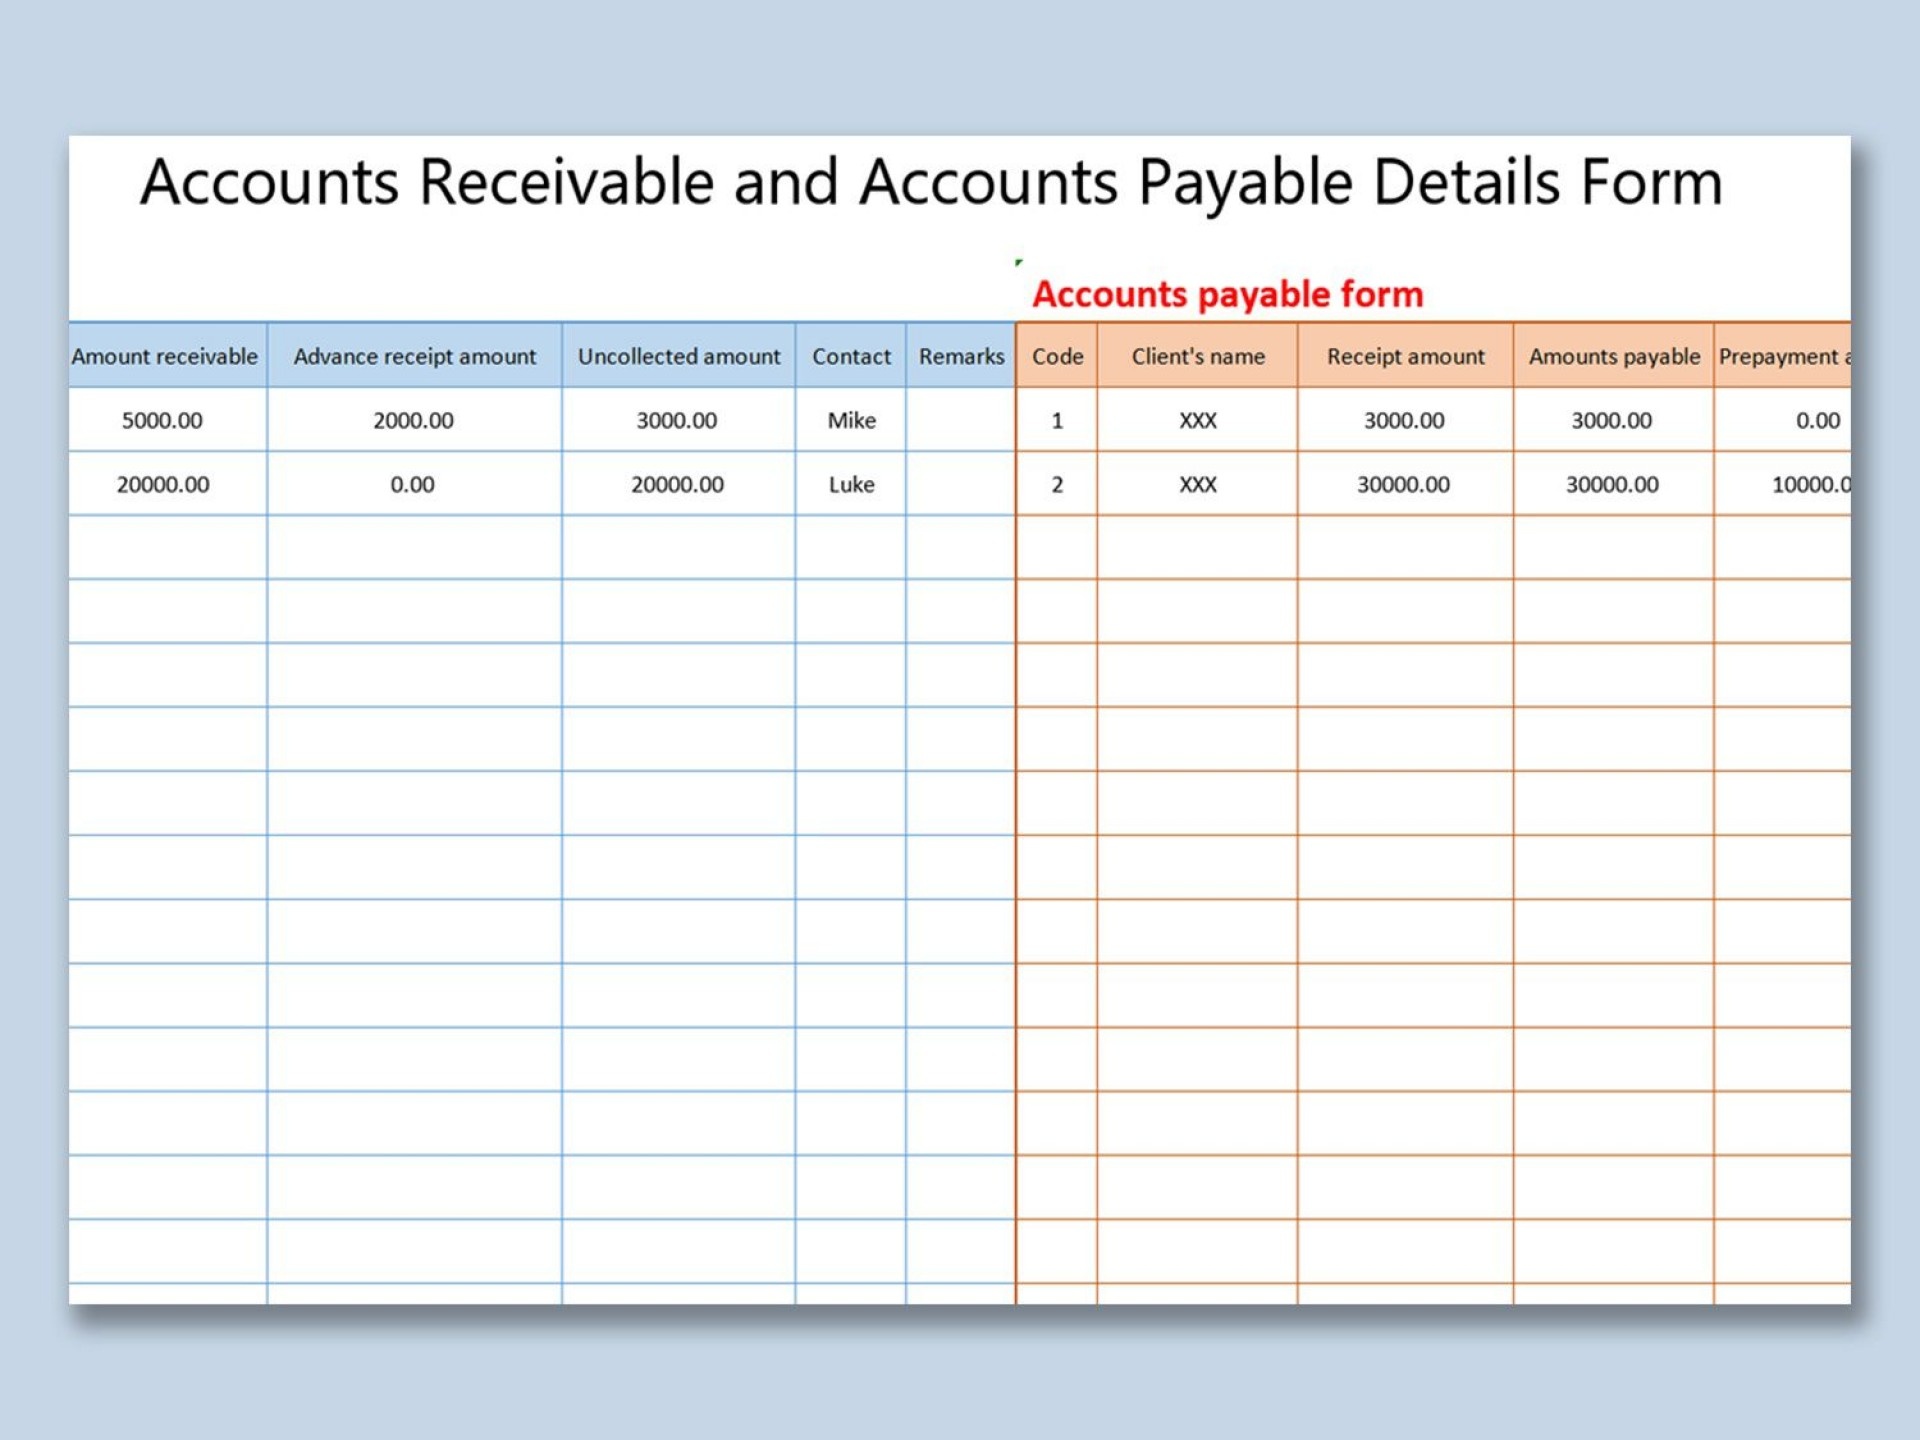 007 Impressive Account Receivable Excel Spreadsheet Template Idea  Management Dashboard Free1920